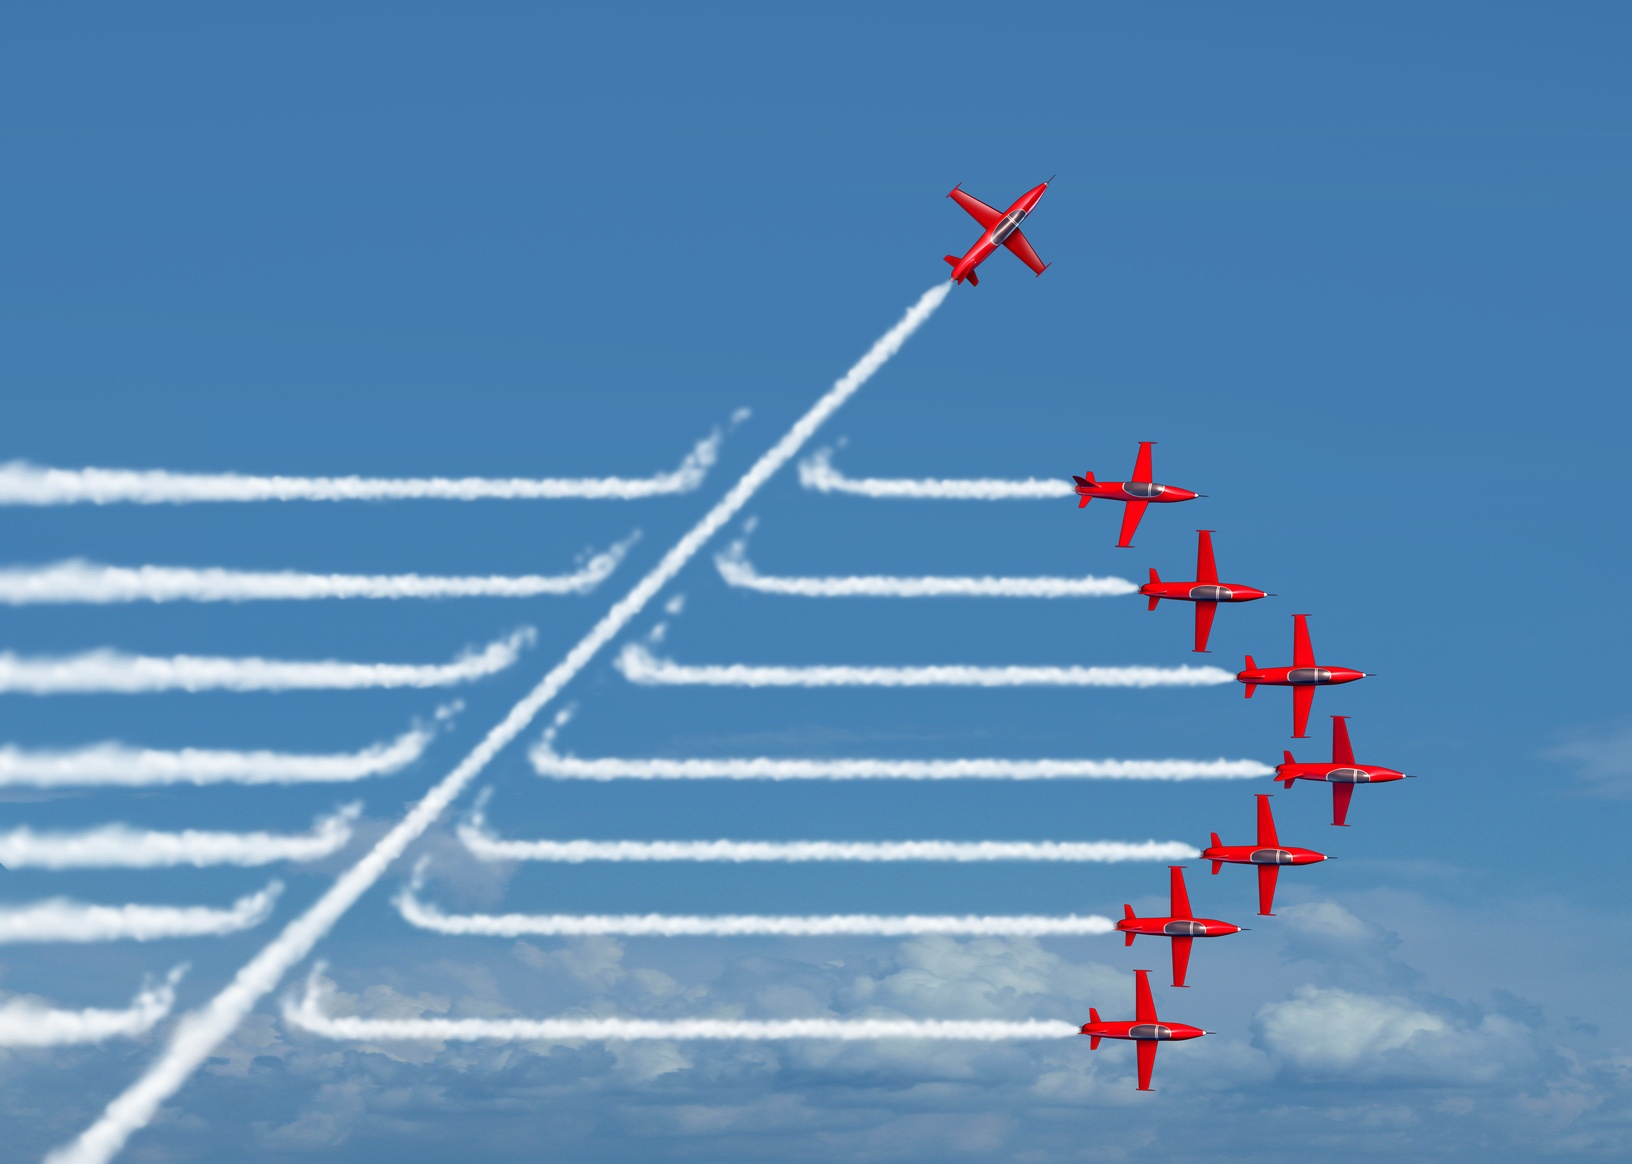 Group of Airplanes Flying in Formation with One Shifting Away from the Rest